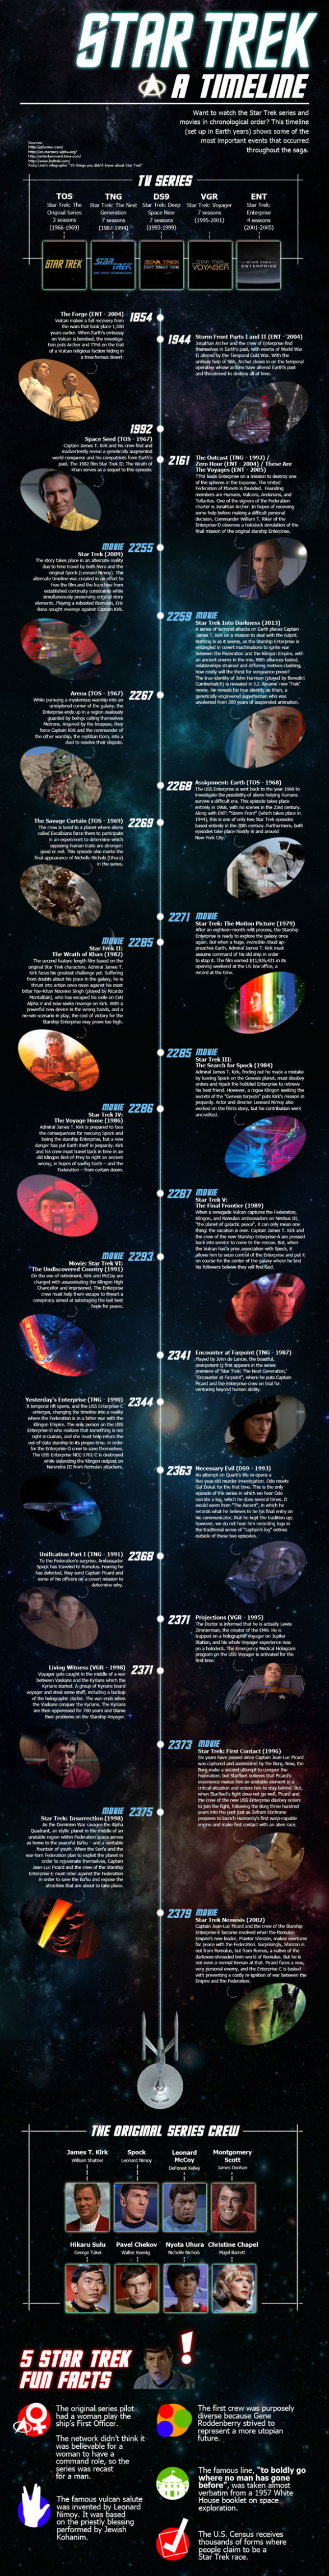 Star Trek Episodes Timeline